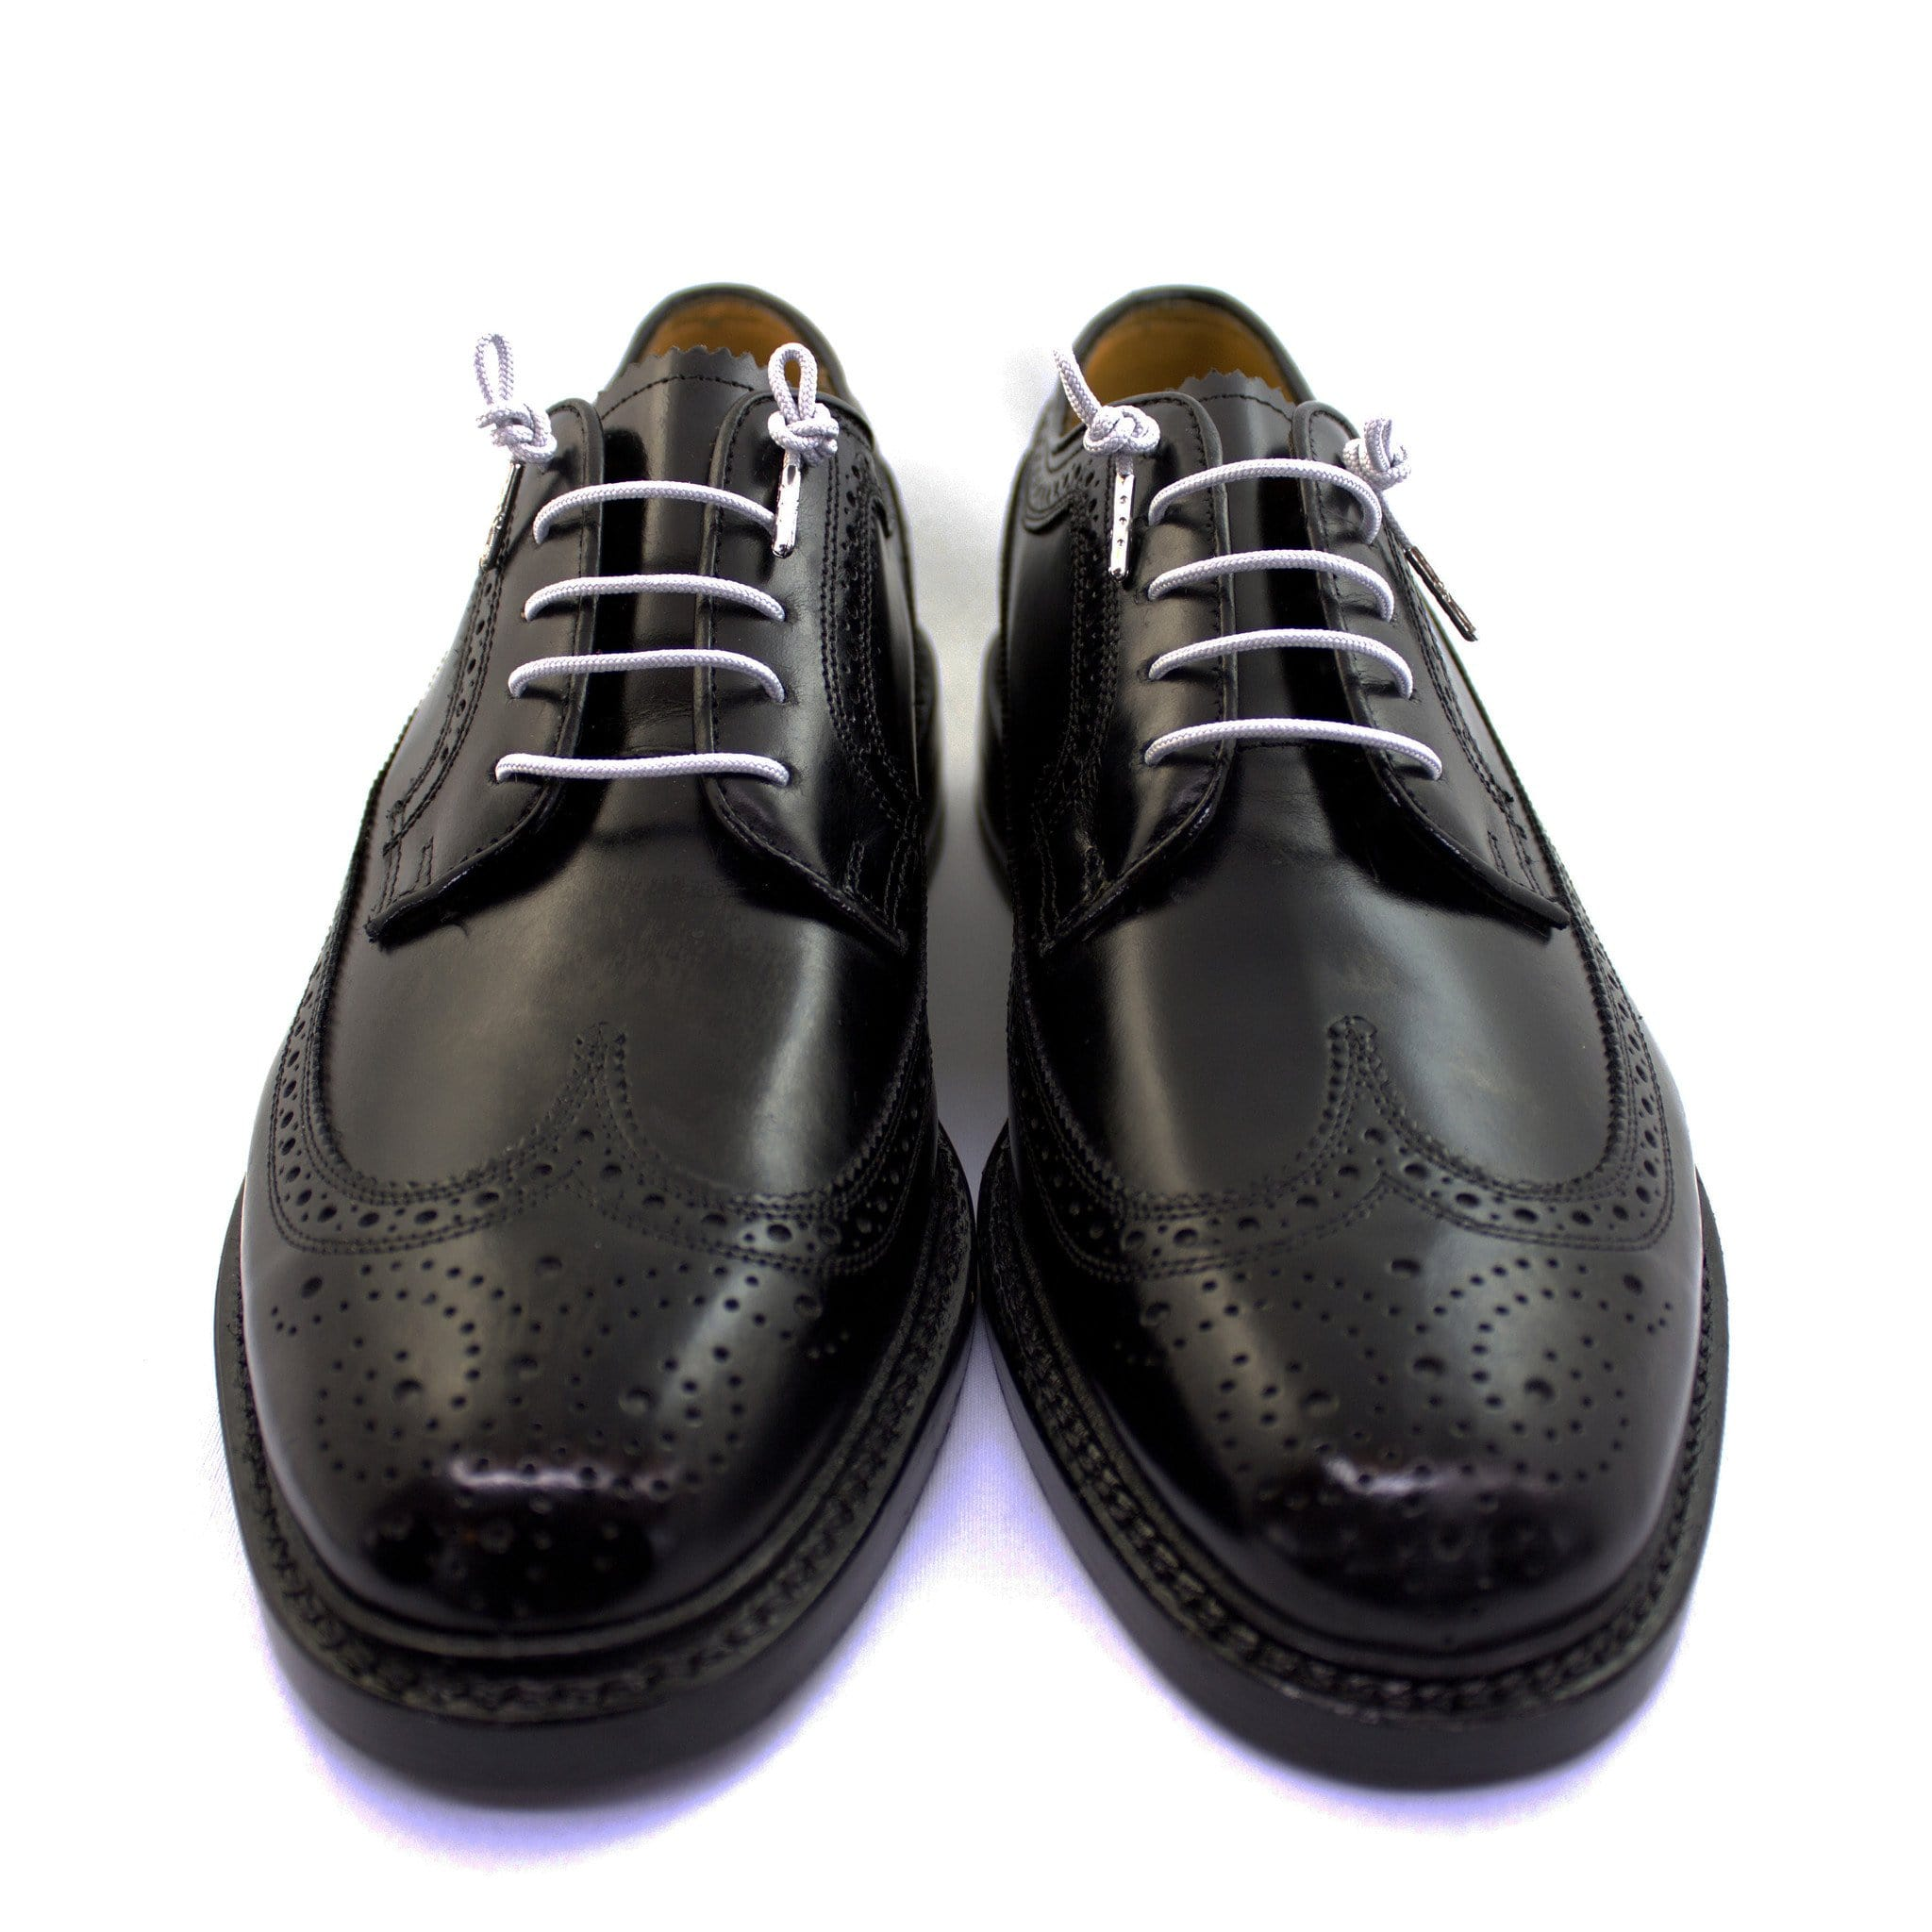 "Light gray laces for dress shoes, Length: 32""/81cm-Stolen Riches"